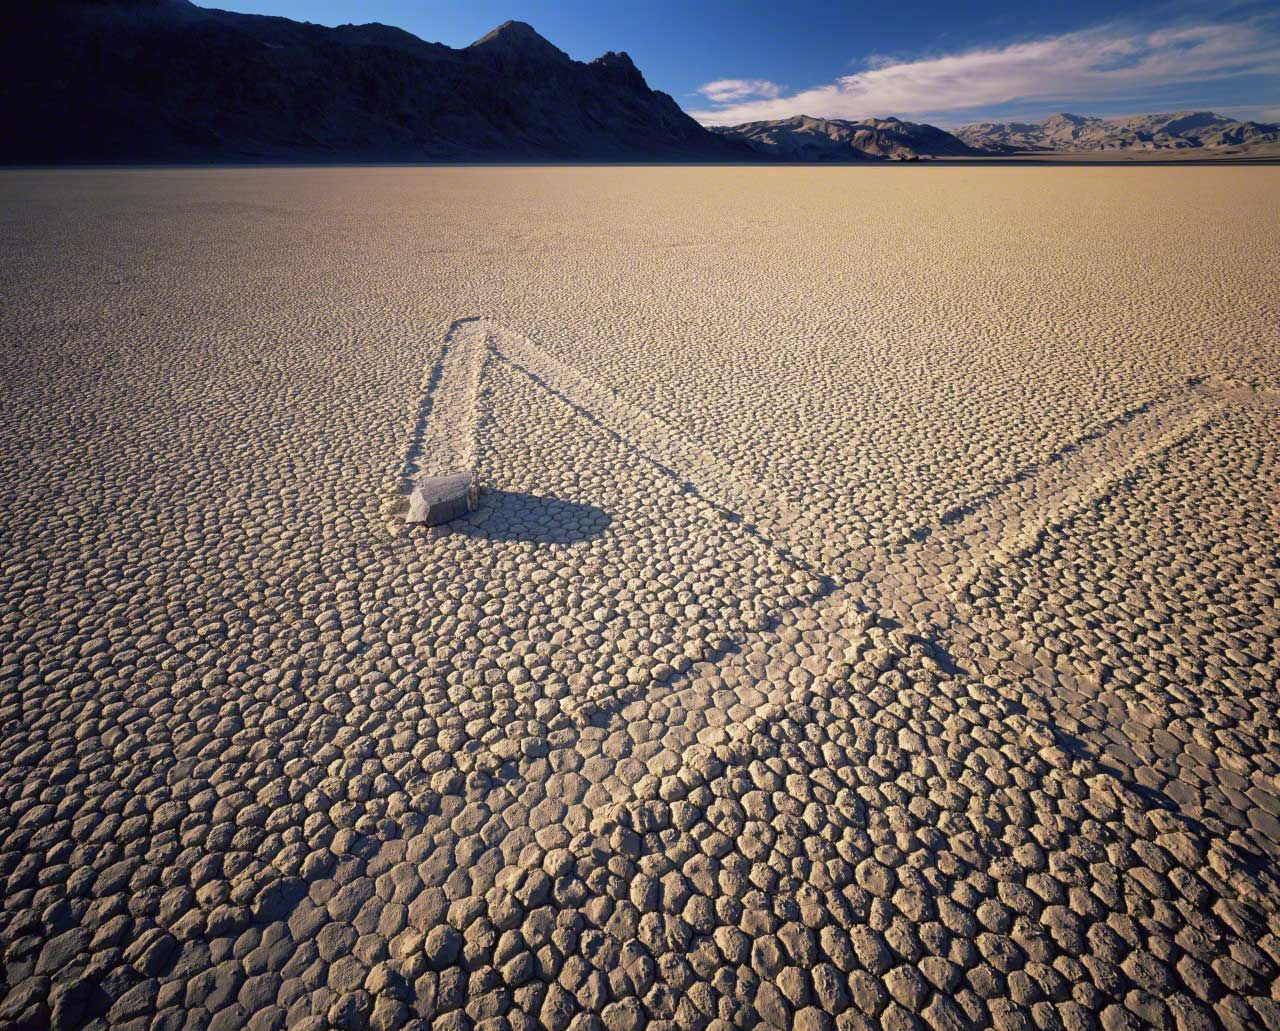 California, USA --- Boulder with zig-zag trails across a dry lake bed, sunset, Ubehebe Peak in distance, The Racetrack Playa, Death Valley National Park, California --- Image by © Jack Dykinga/Nature Picture Library/Corbis